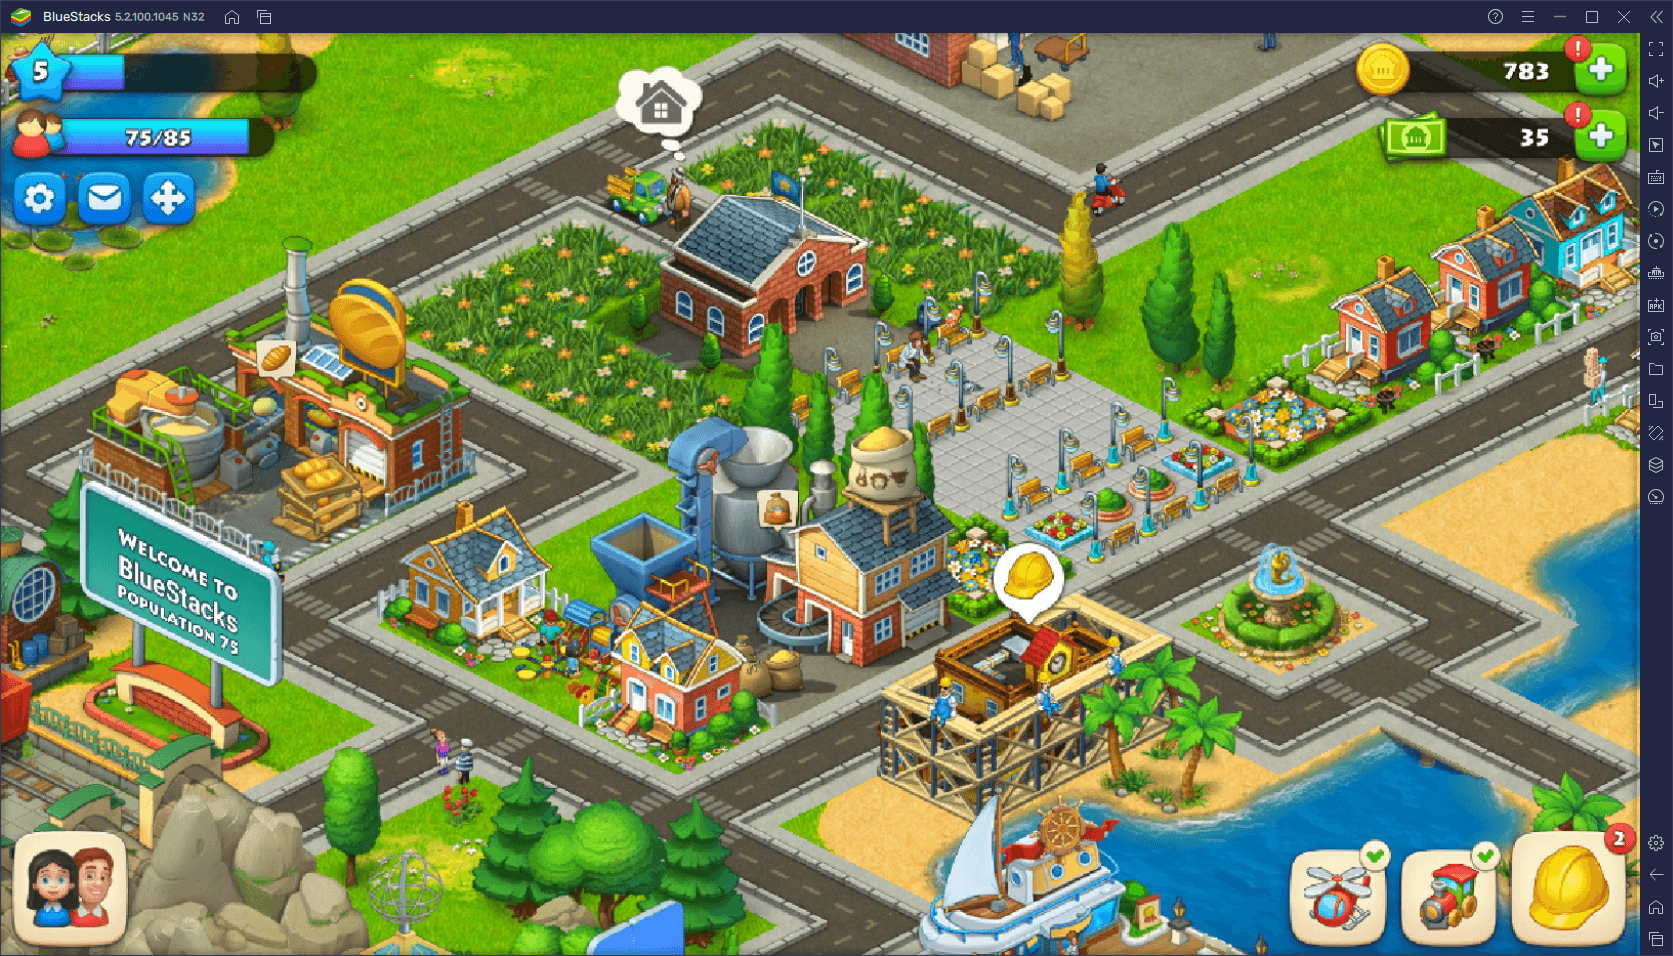 Township Building Guide and Tips – The Best Tricks and Strategies for Developing Your Town